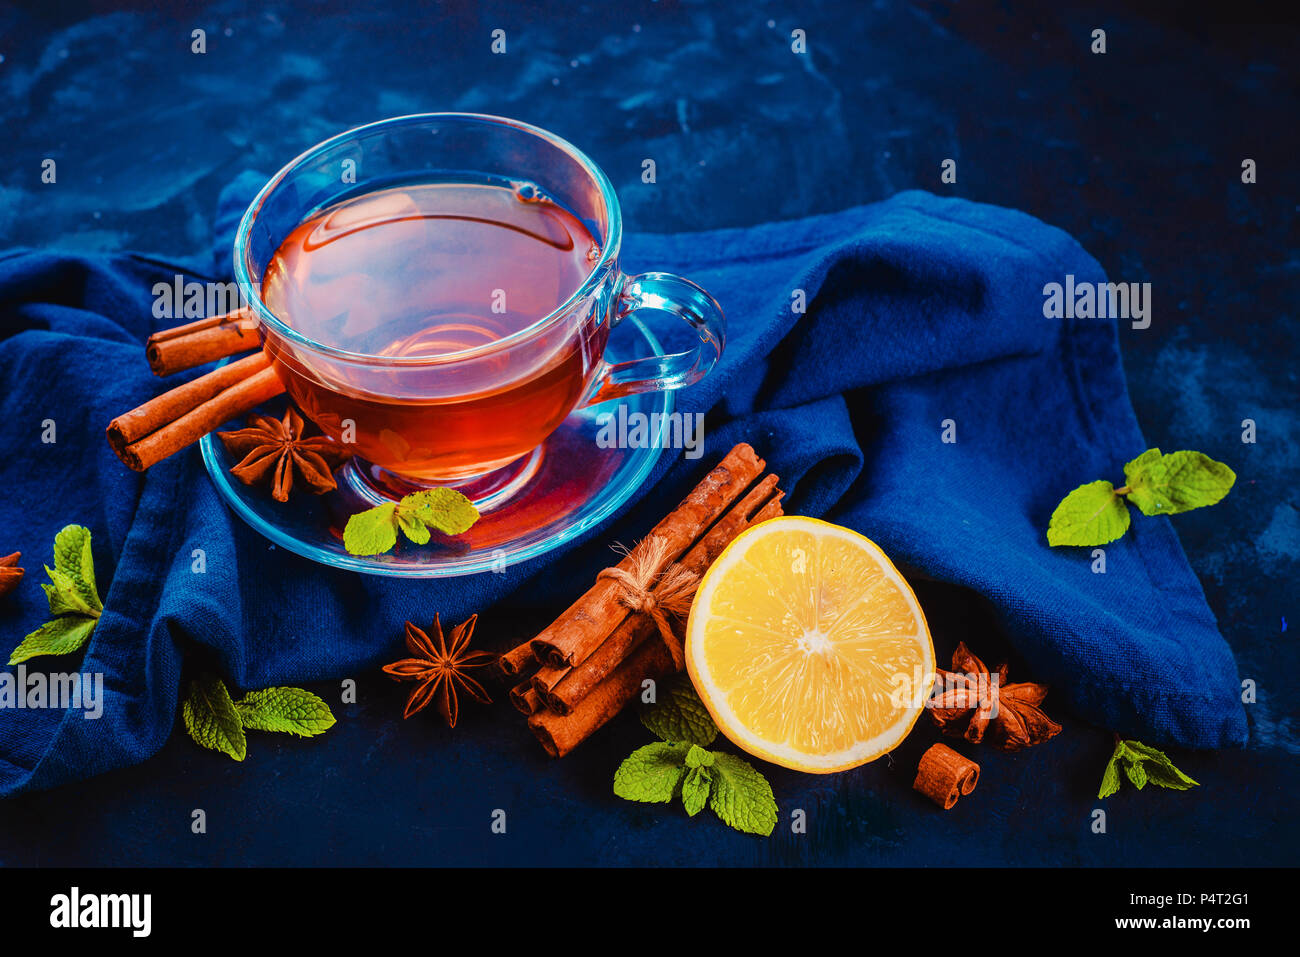 Glass tea cup and saucer with lemon slices, cinnamon, anise stars and mint leaves on a dark background with linen napkin. Vibrant colors hot drink fla - Stock Image